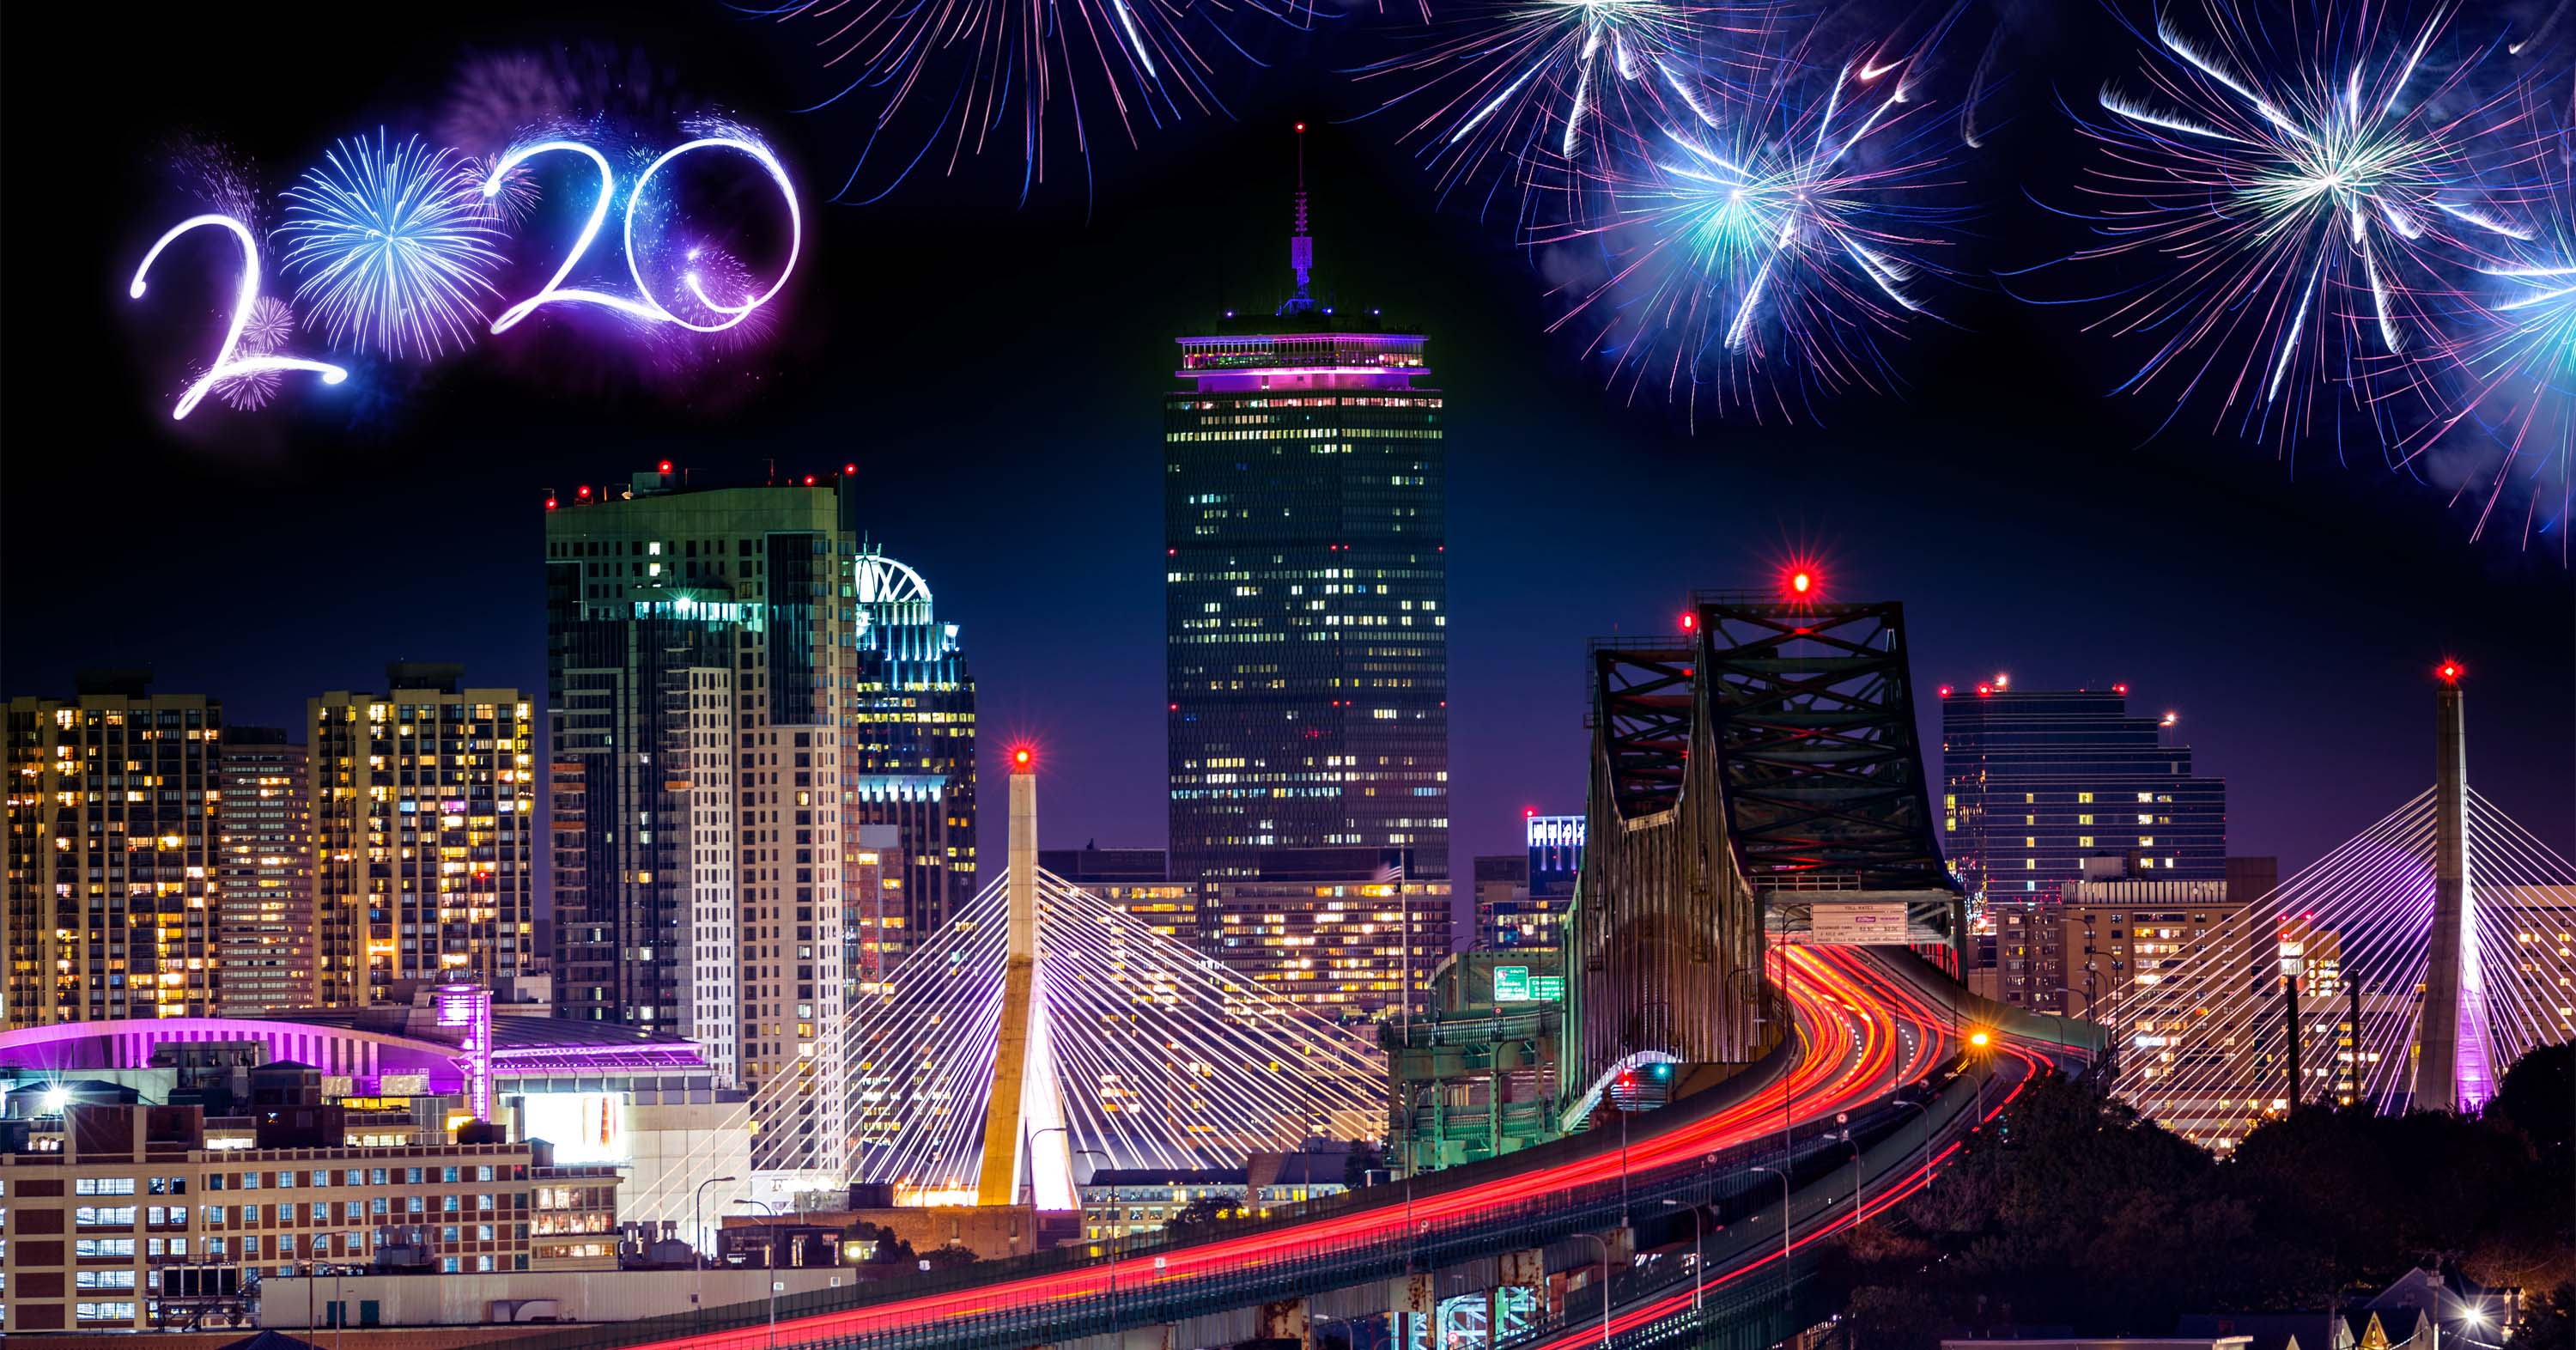 65 things to do in boston on new year s eve 12 31 19 https www thebostoncalendar com events 65 things to do in boston on new year s eve